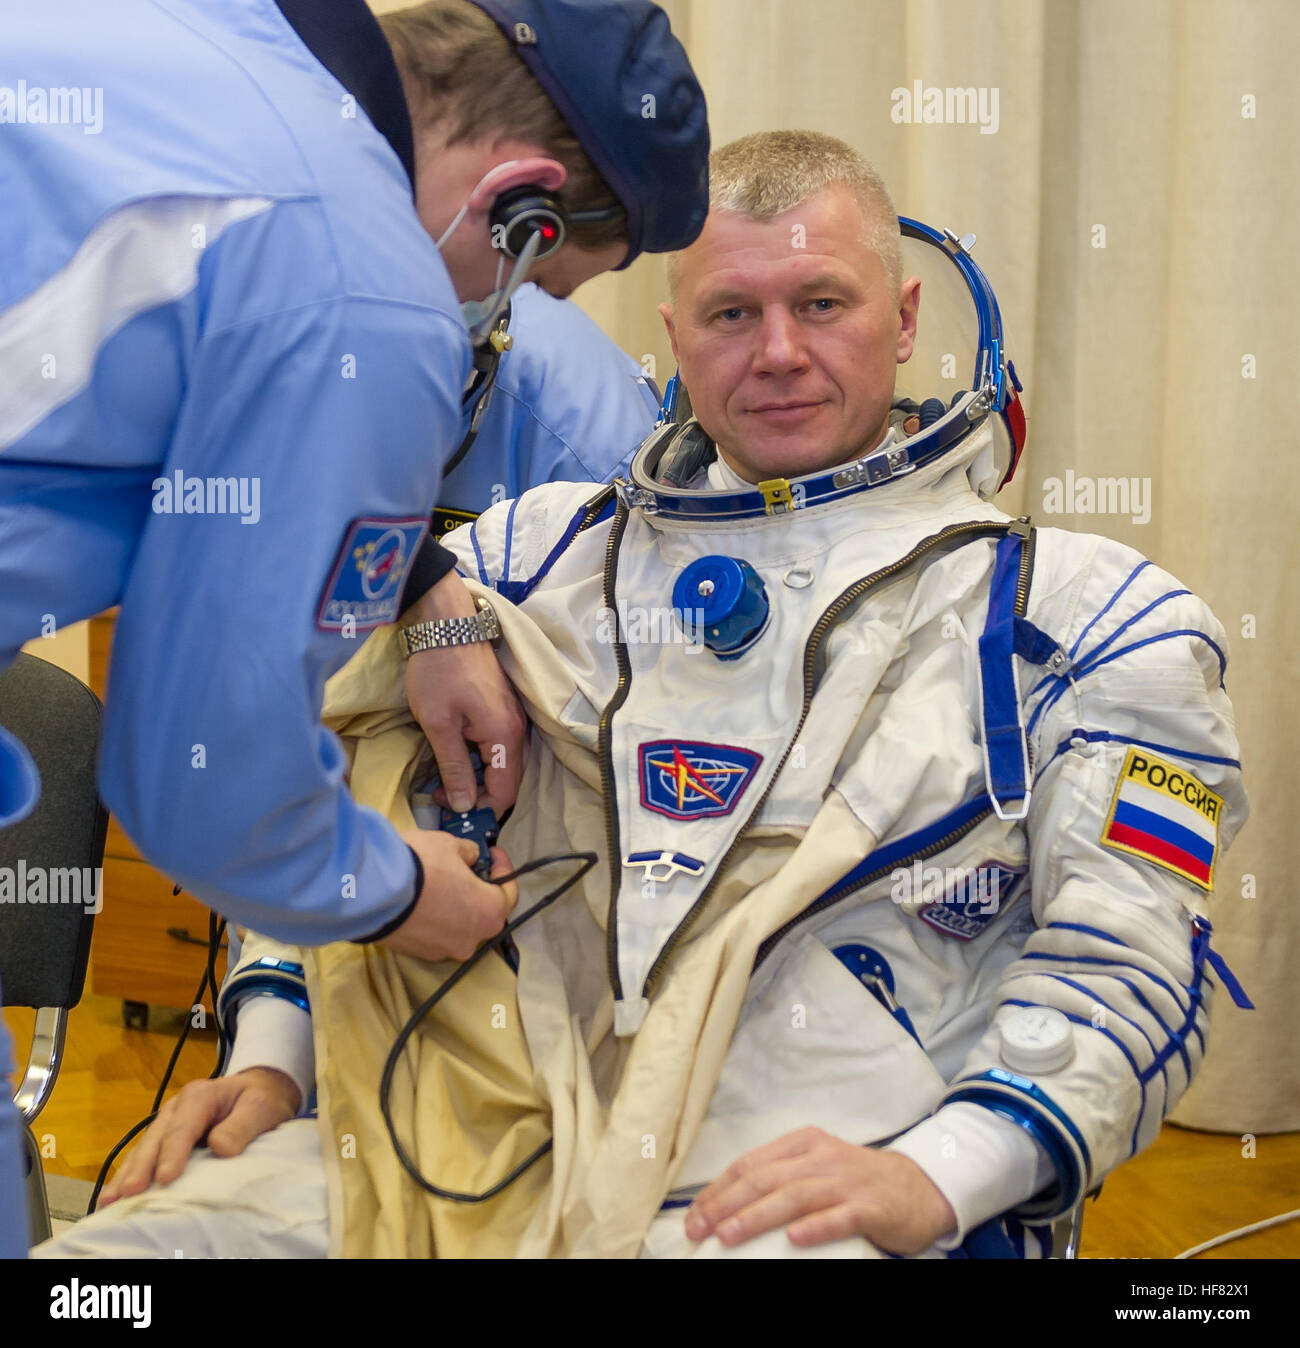 Expedition 50 Russian cosmonaut Oleg Novitskiy of Roscosmos is seen donning his Russian sokol suit a few hours ahead - Stock Image